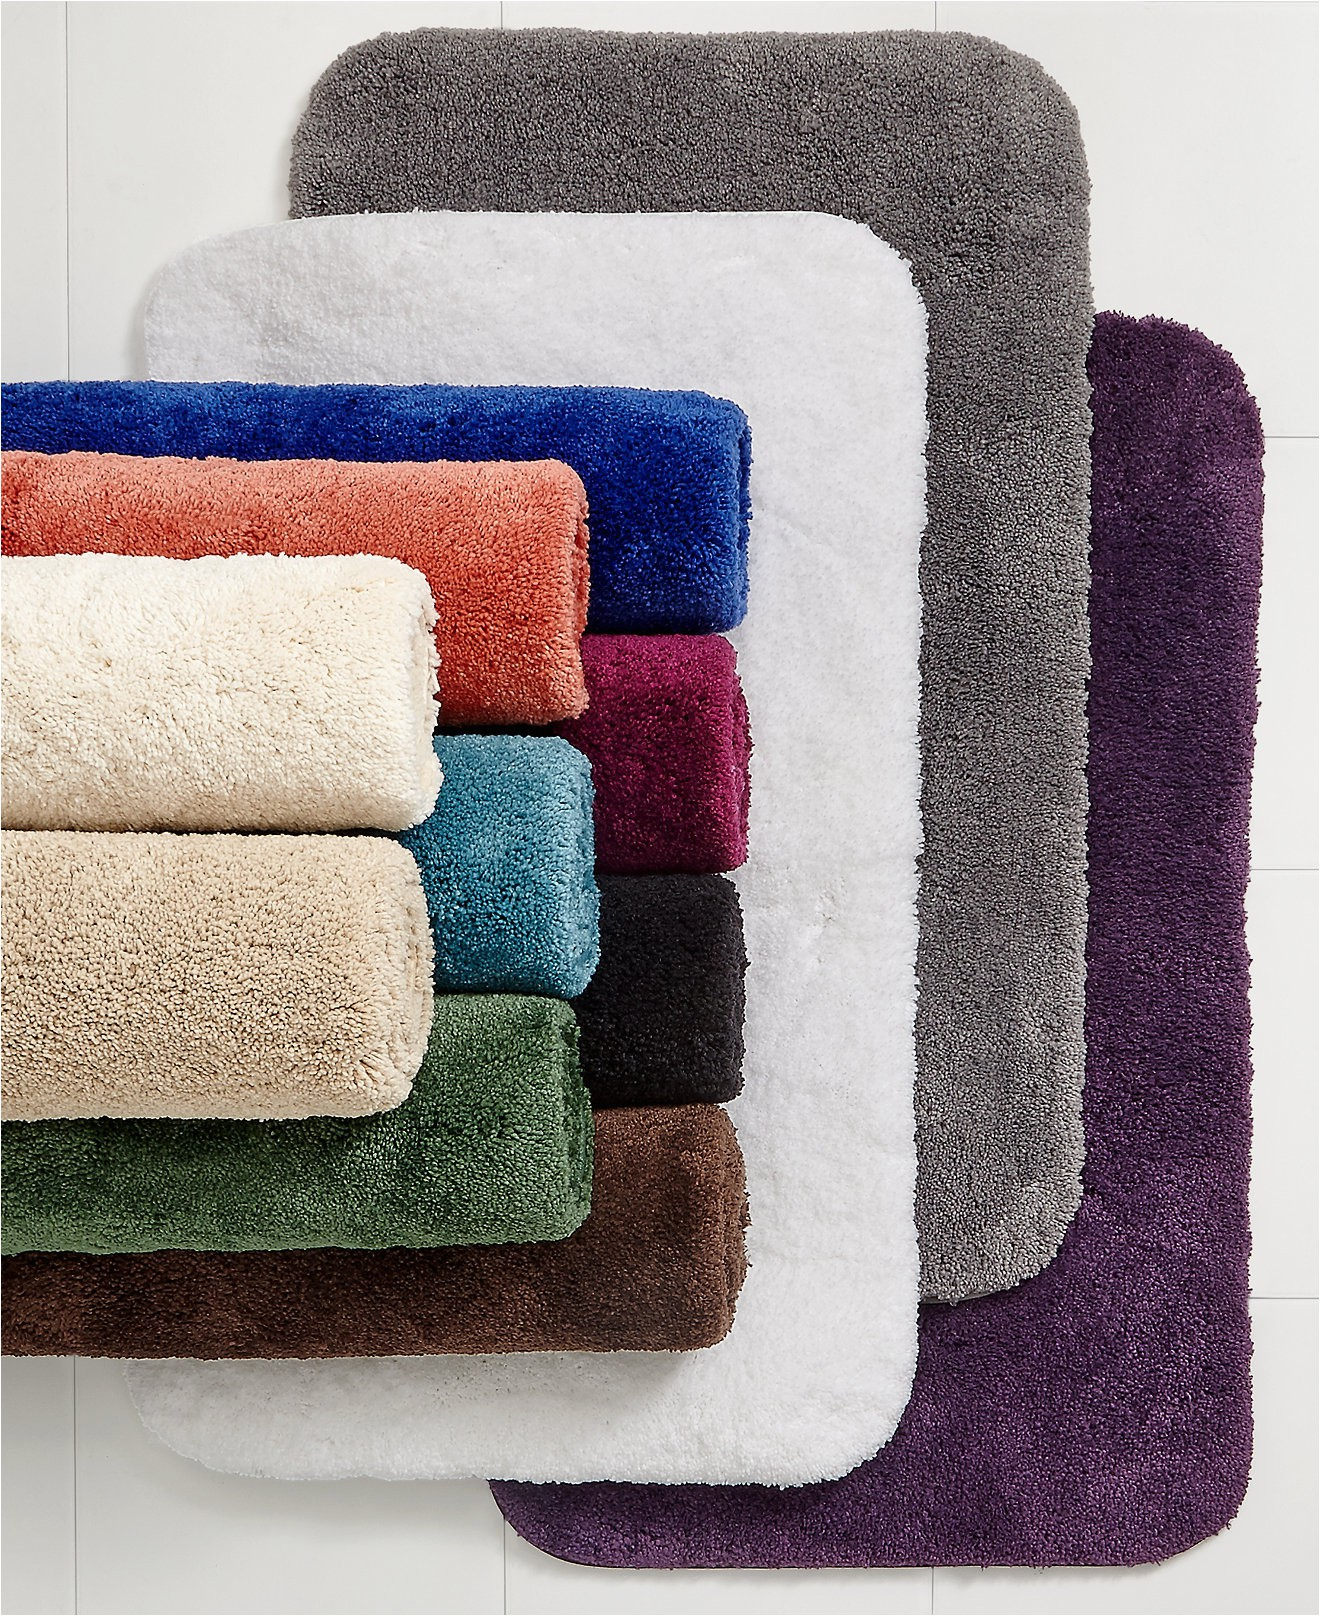 Jcpenney Bath Mats and Rugs Jcpenney Bathroom Rugs and towels Image Of Bathroom and Closet